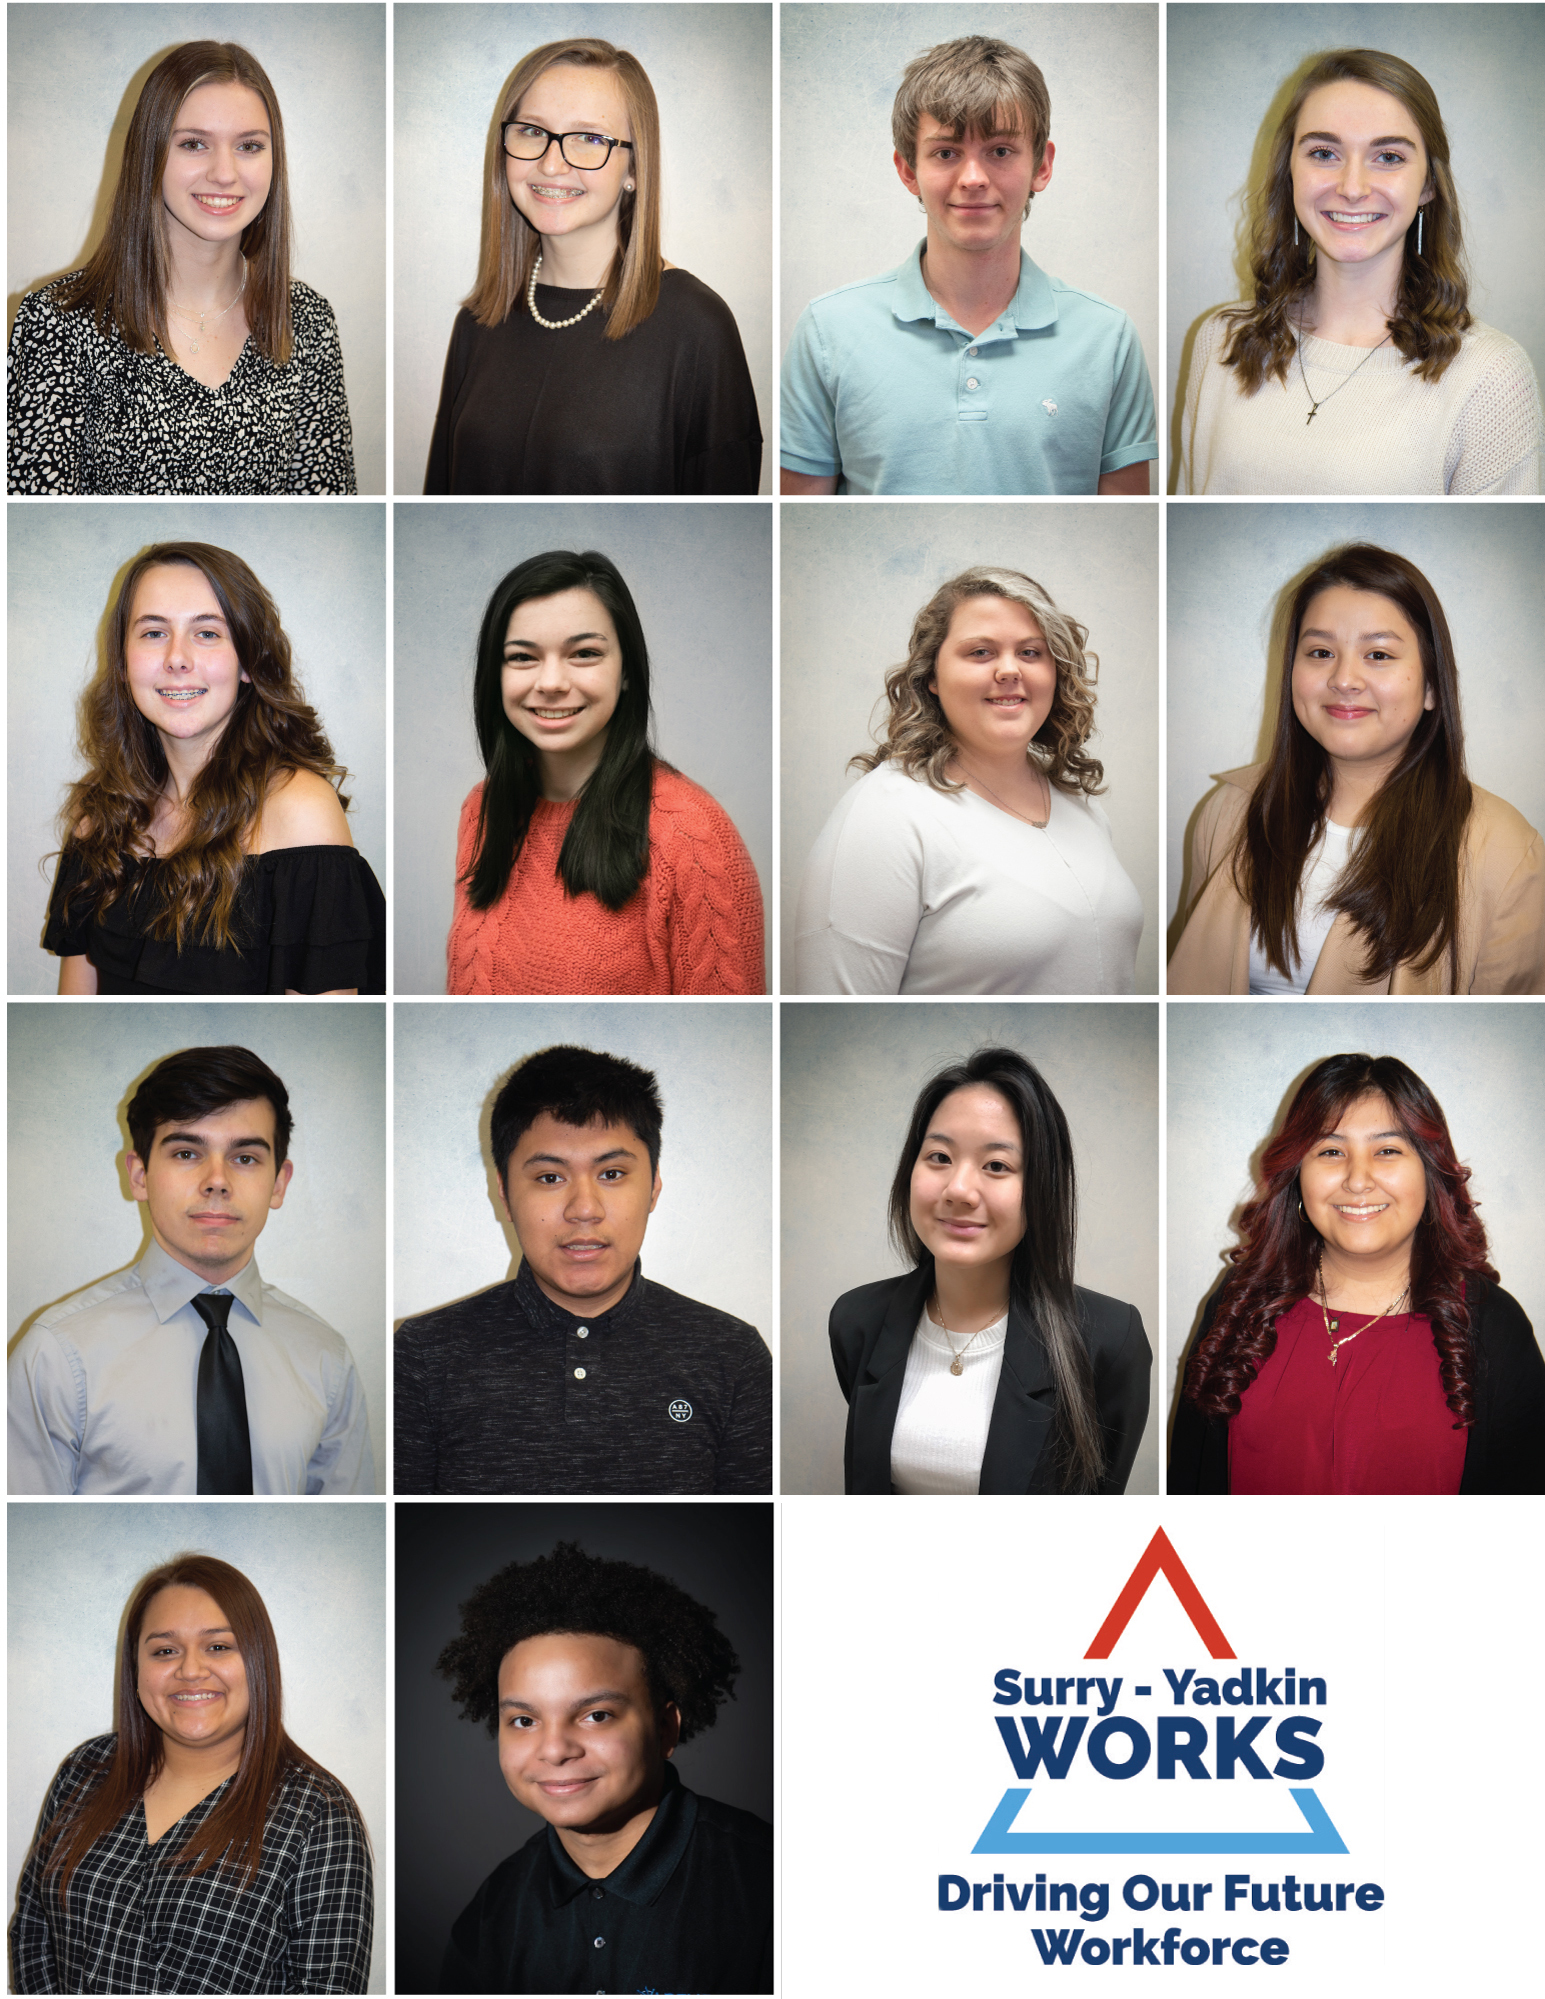 Surry-Yadkin Works Interns Surry Central High School, Surry Early College